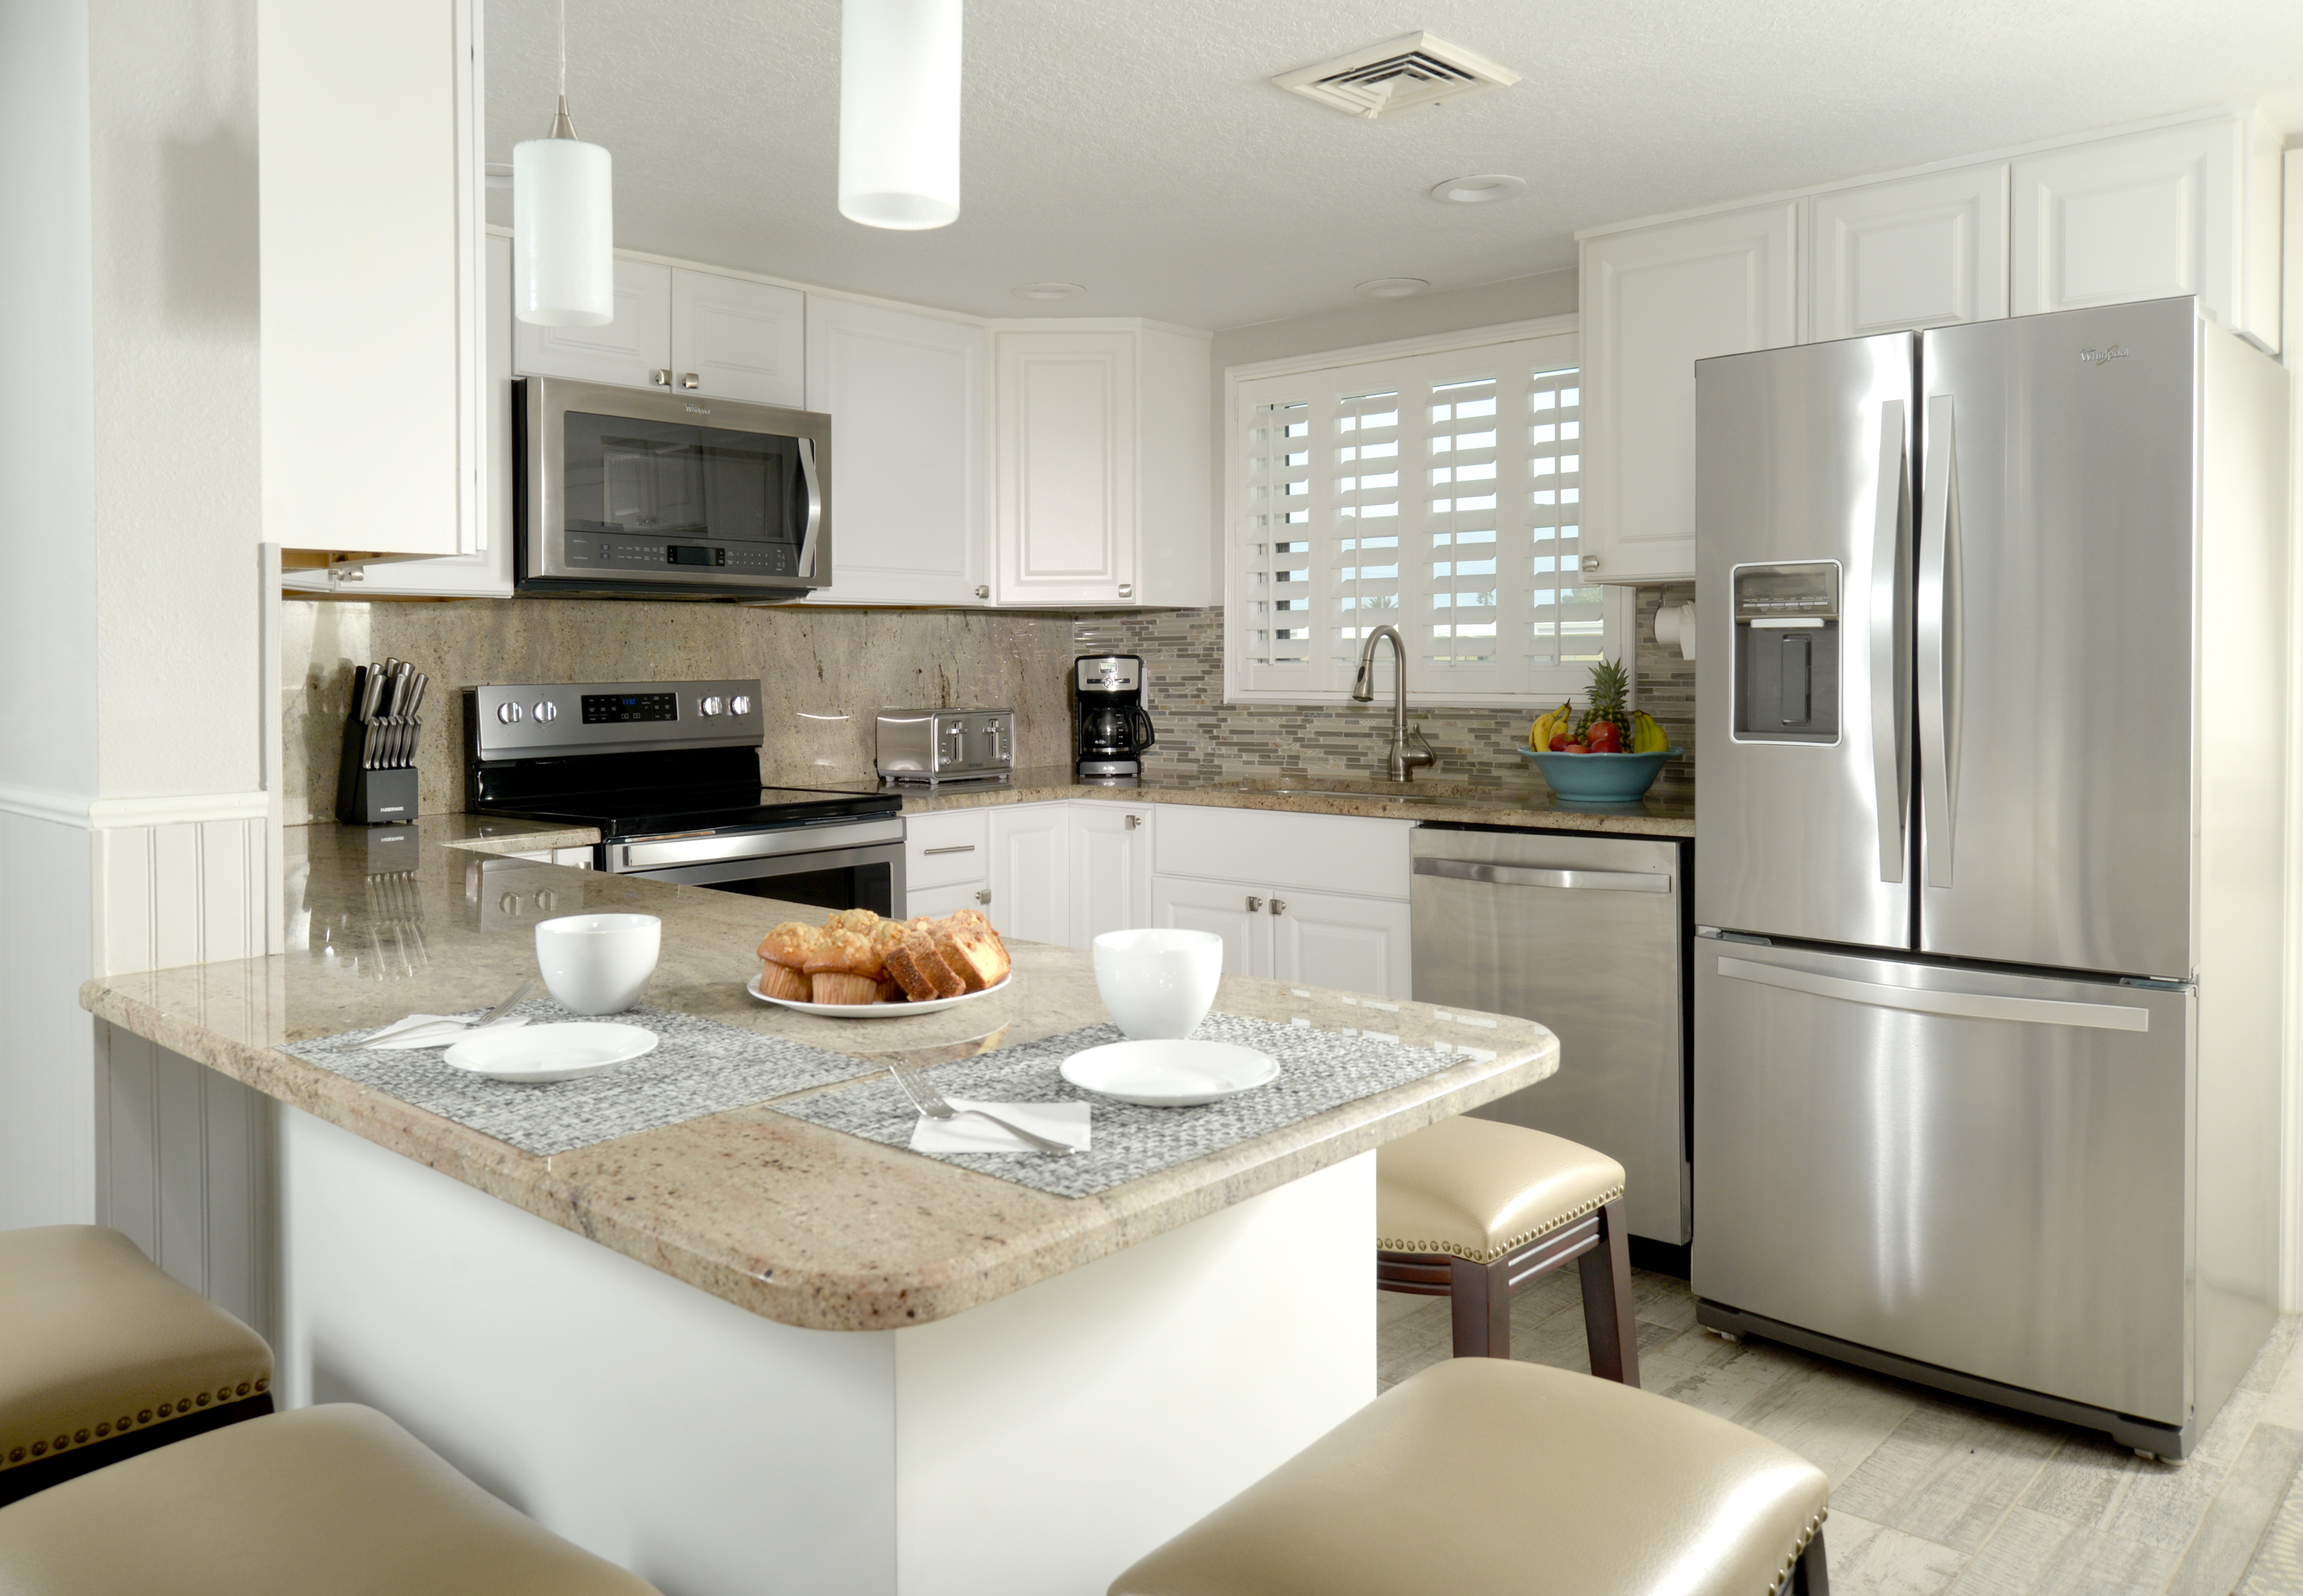 2 Bedroom Suite Kitchen